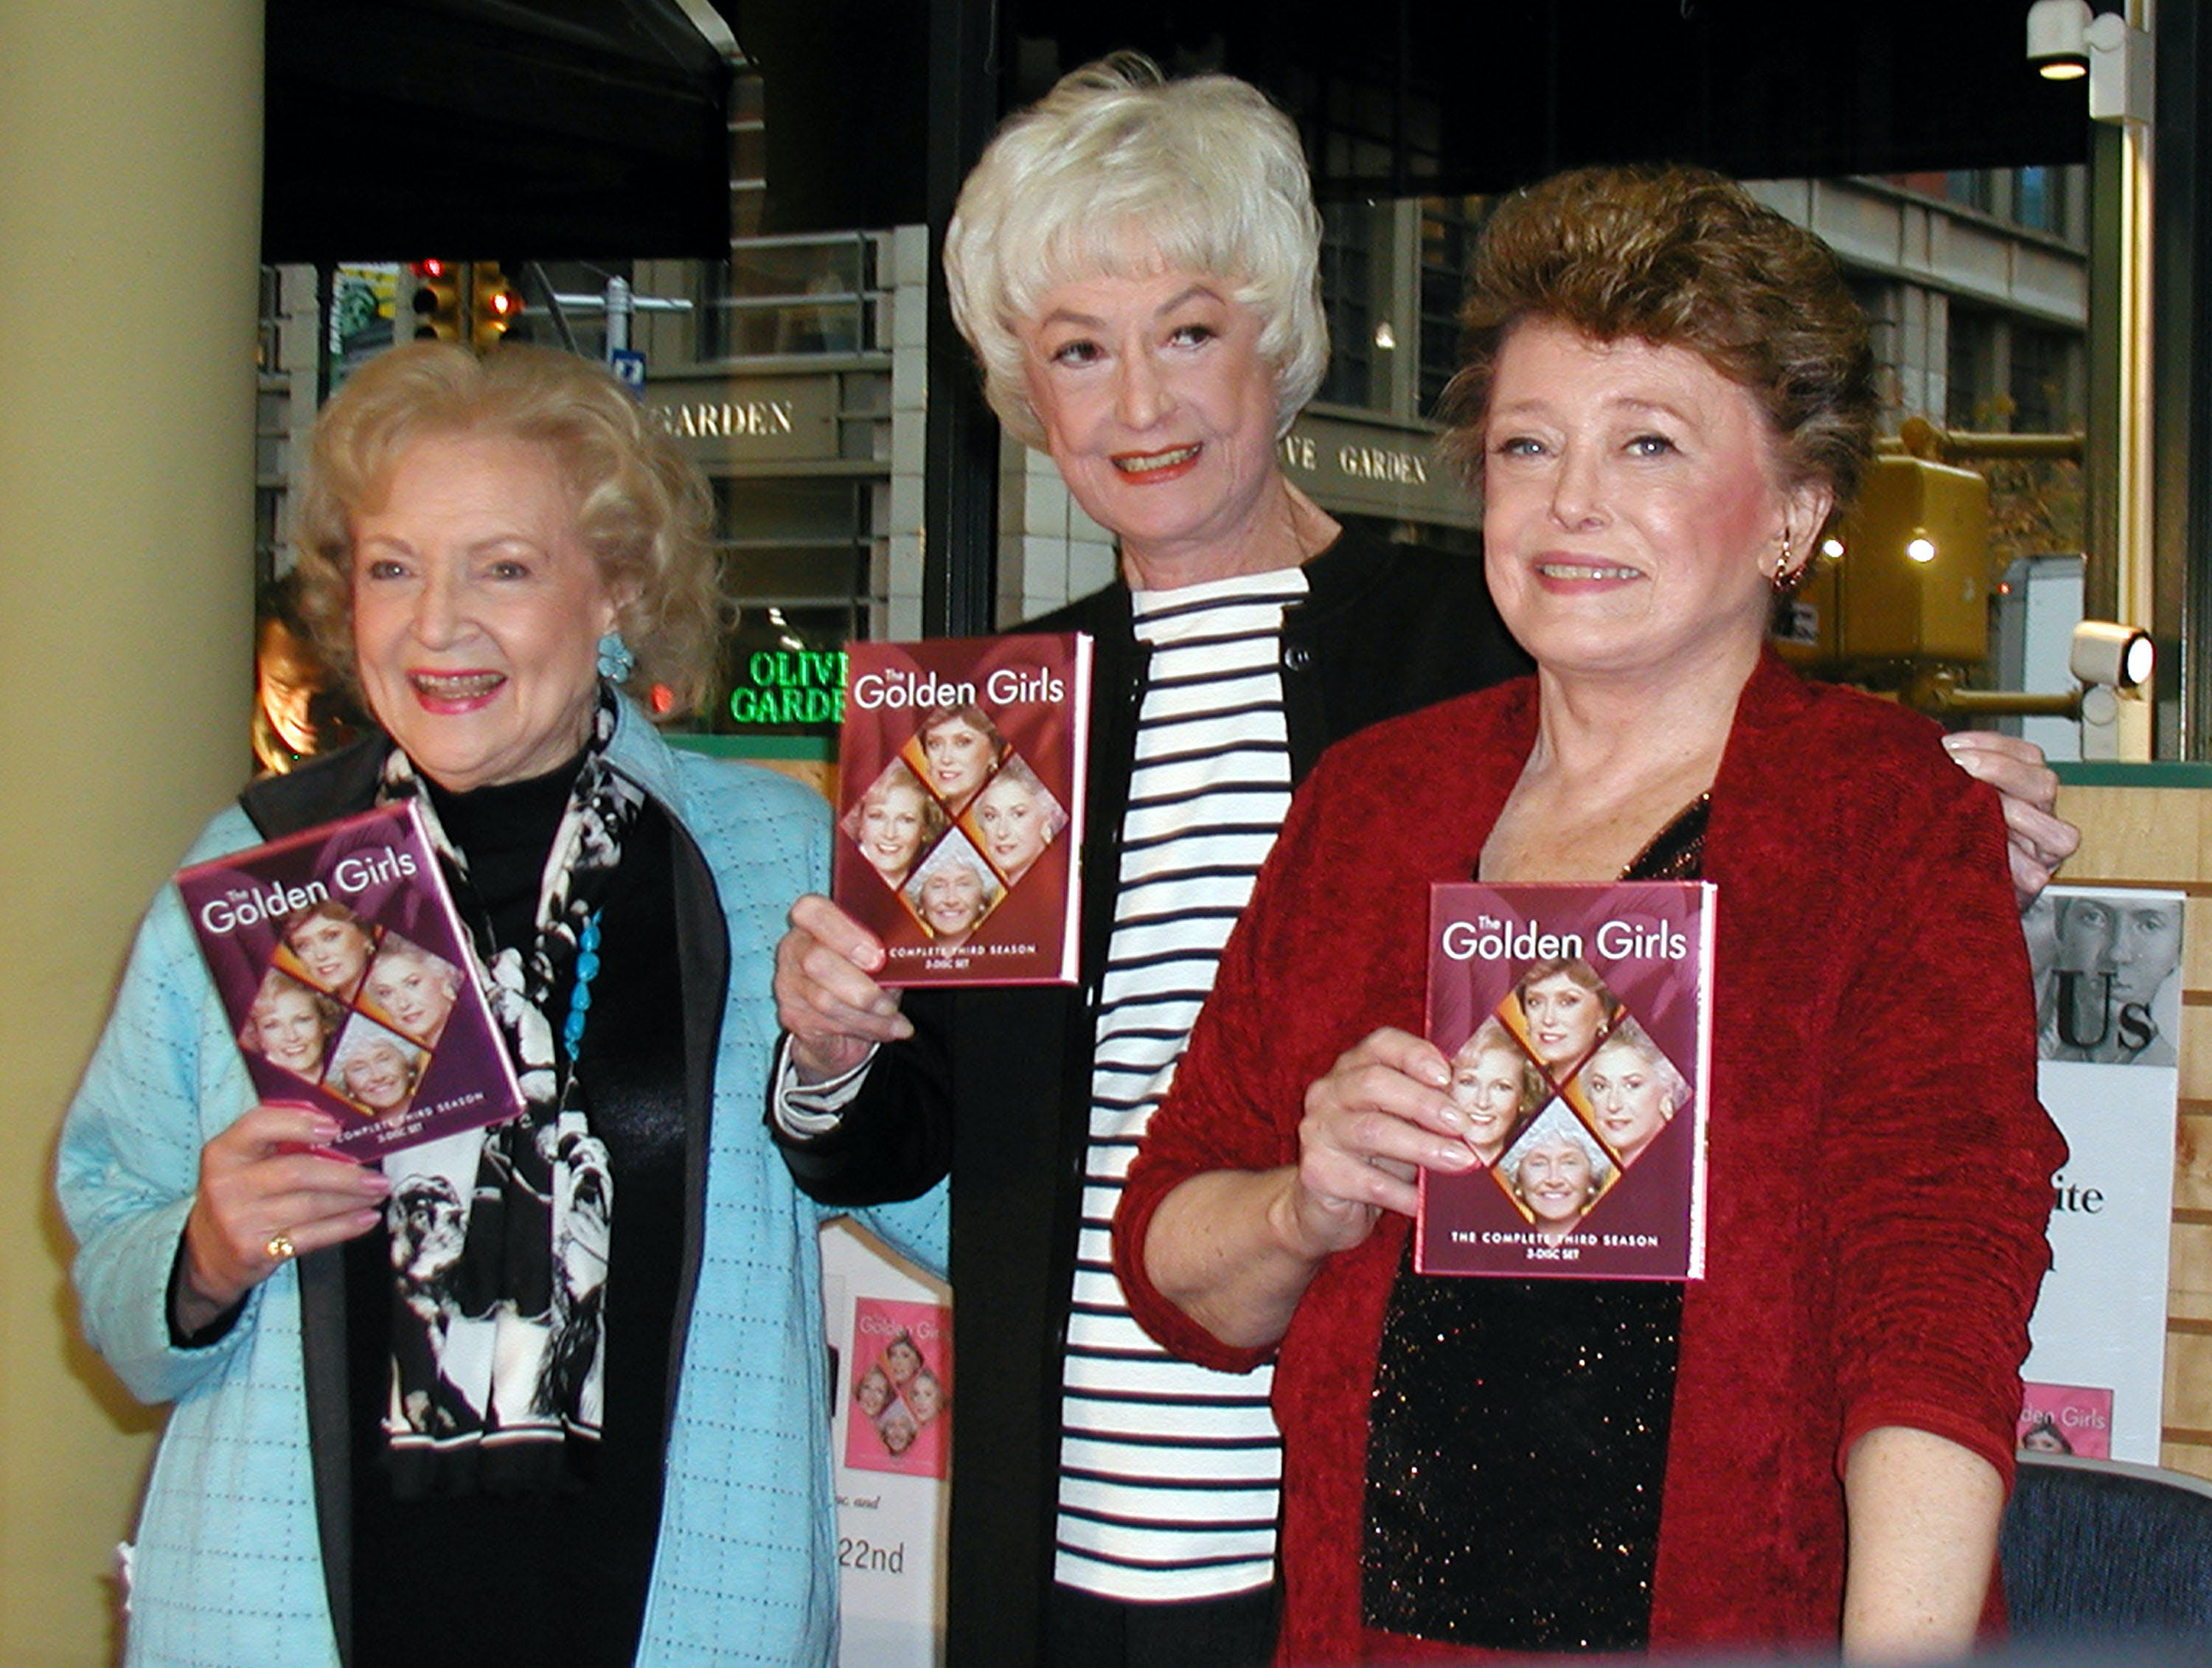 2005 Betty White  Bea Arthur and Rue McClanahan promoting Golden Girls dvd season 3  age 83